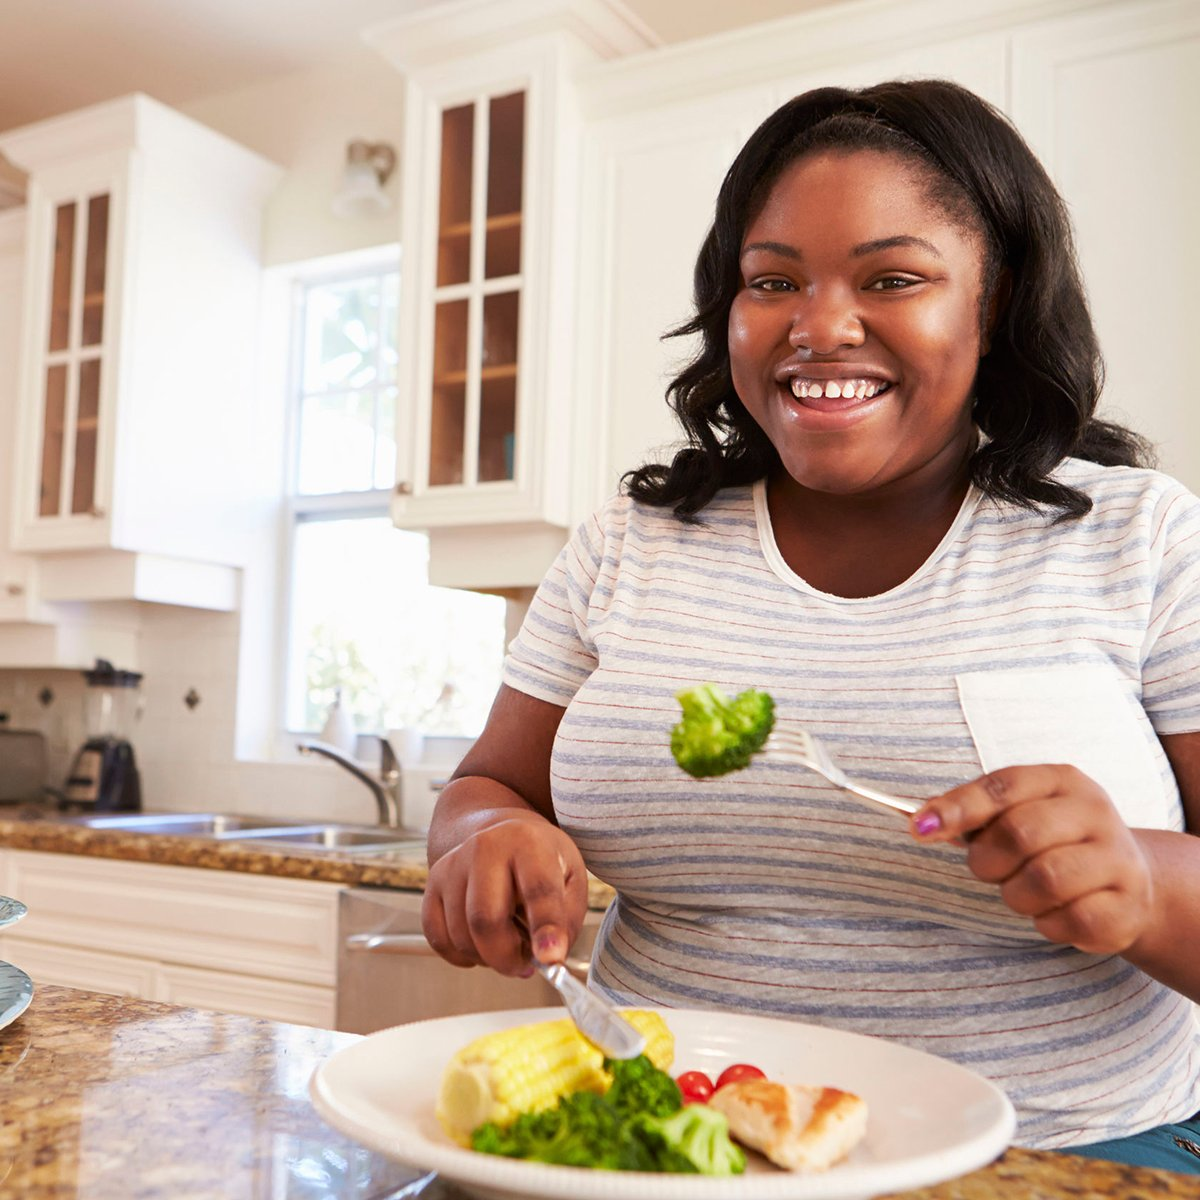 Eating After Bariatric Surgery - Rules for Success